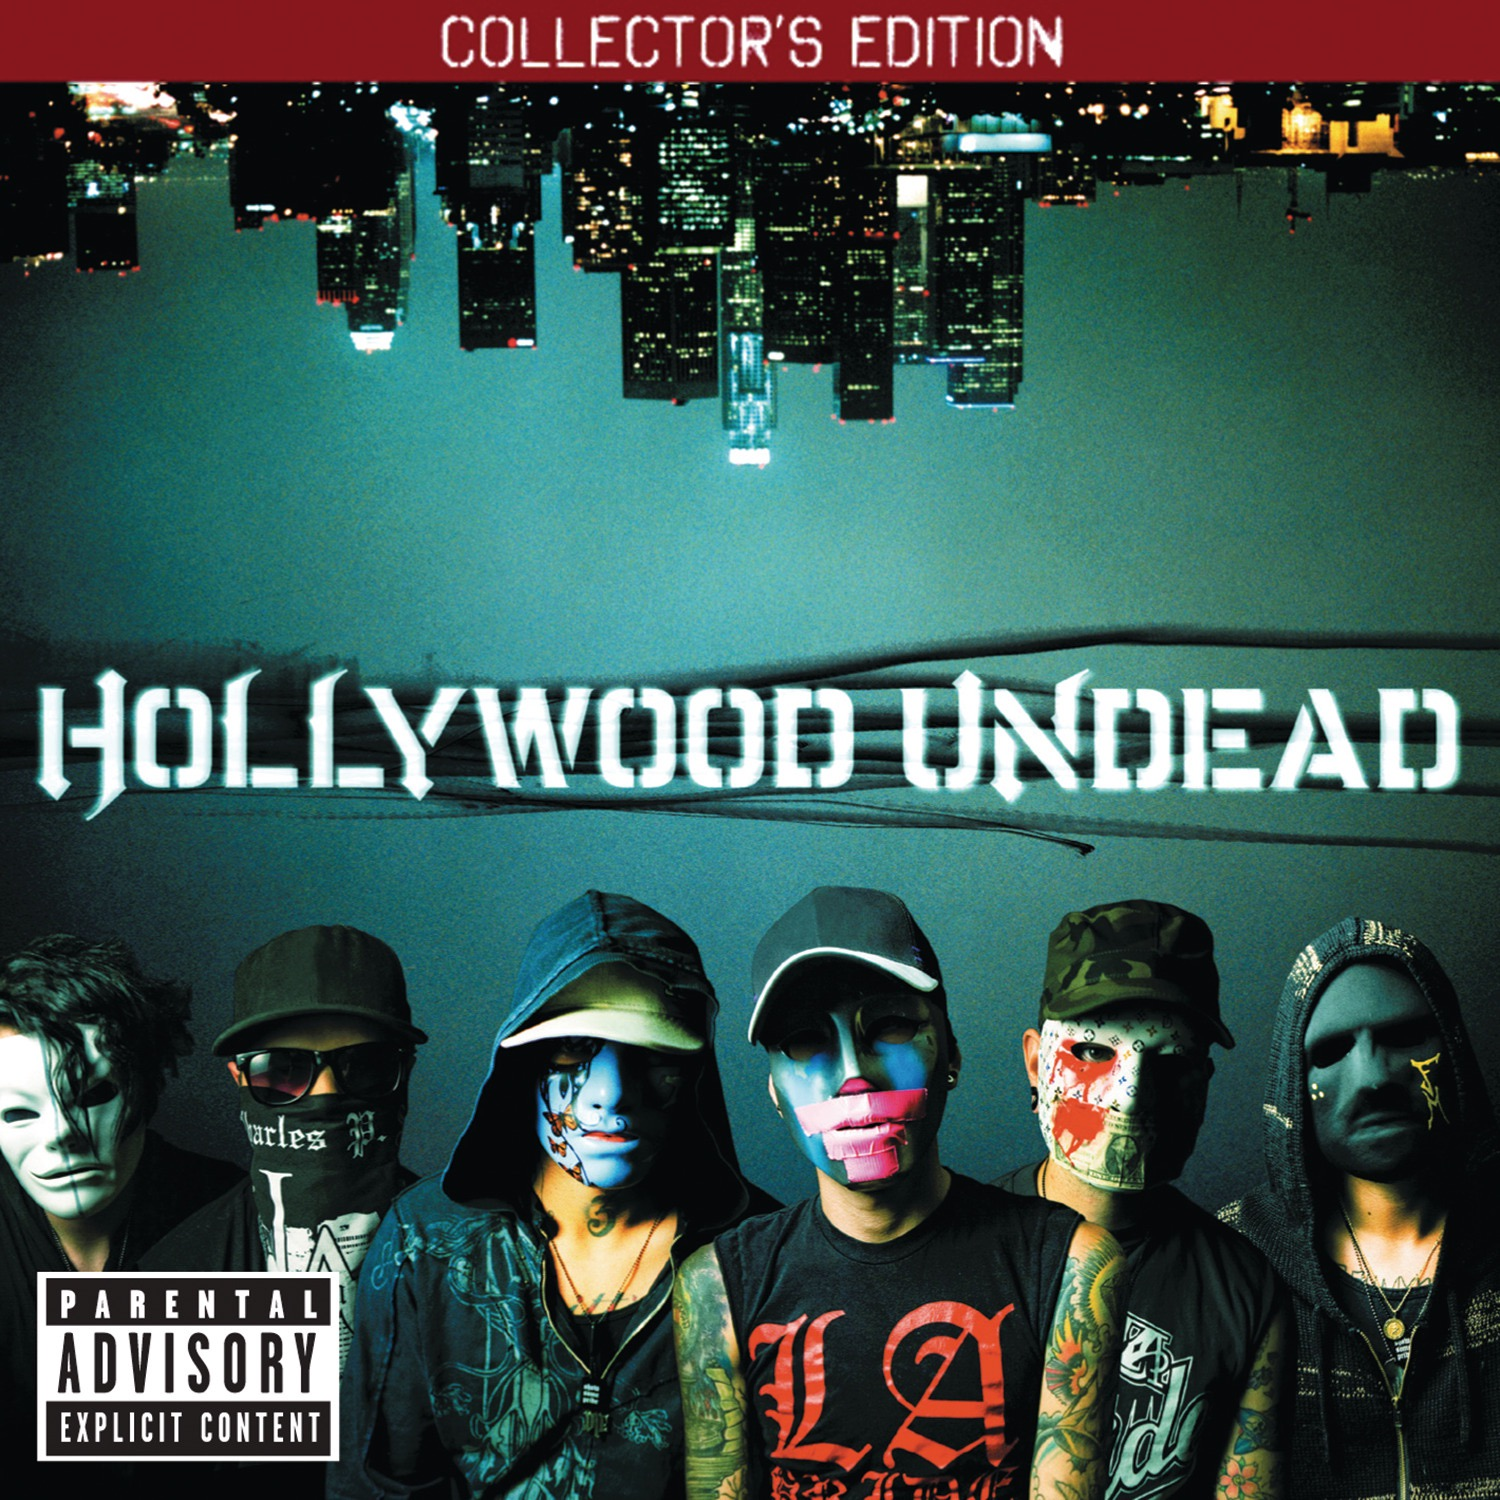 Hollywood Undead album Swan Songs (Collector's Edition)